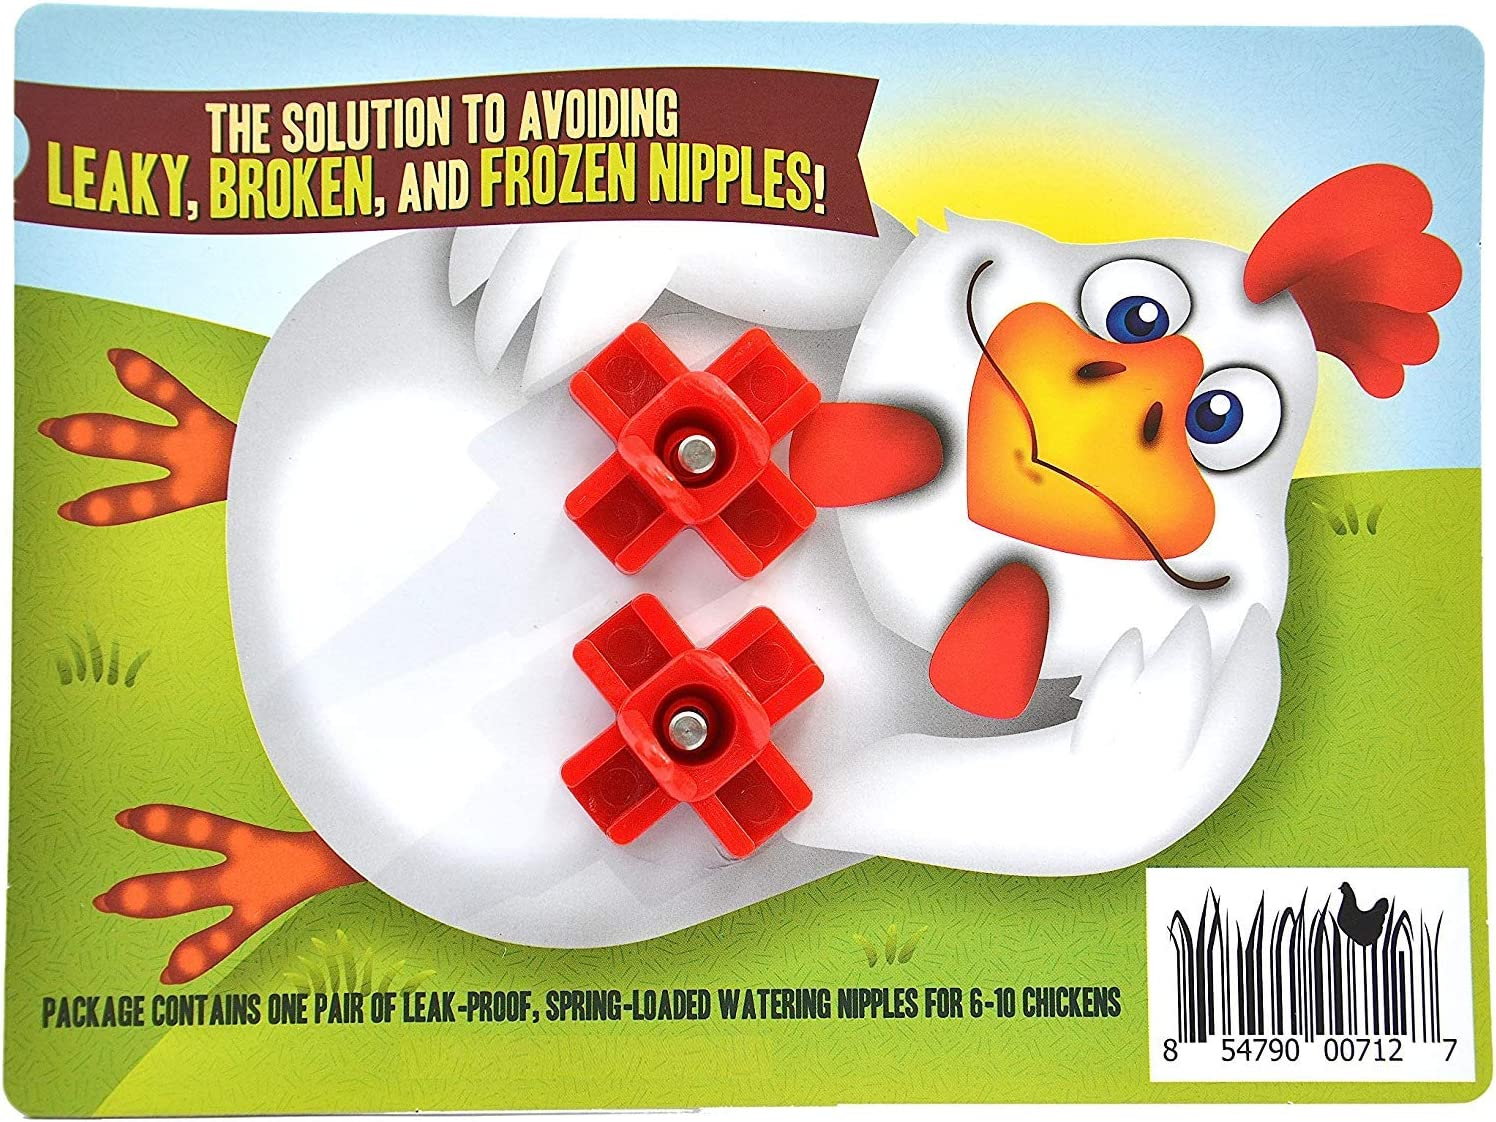 Mink Geese 35 MAIN GIFTS 5 Pack Side Mount Horizontal Poultry Watering Nipples by Rooster Nipples-Chickens Rabbit /& Ferrets Turkey /& Quail